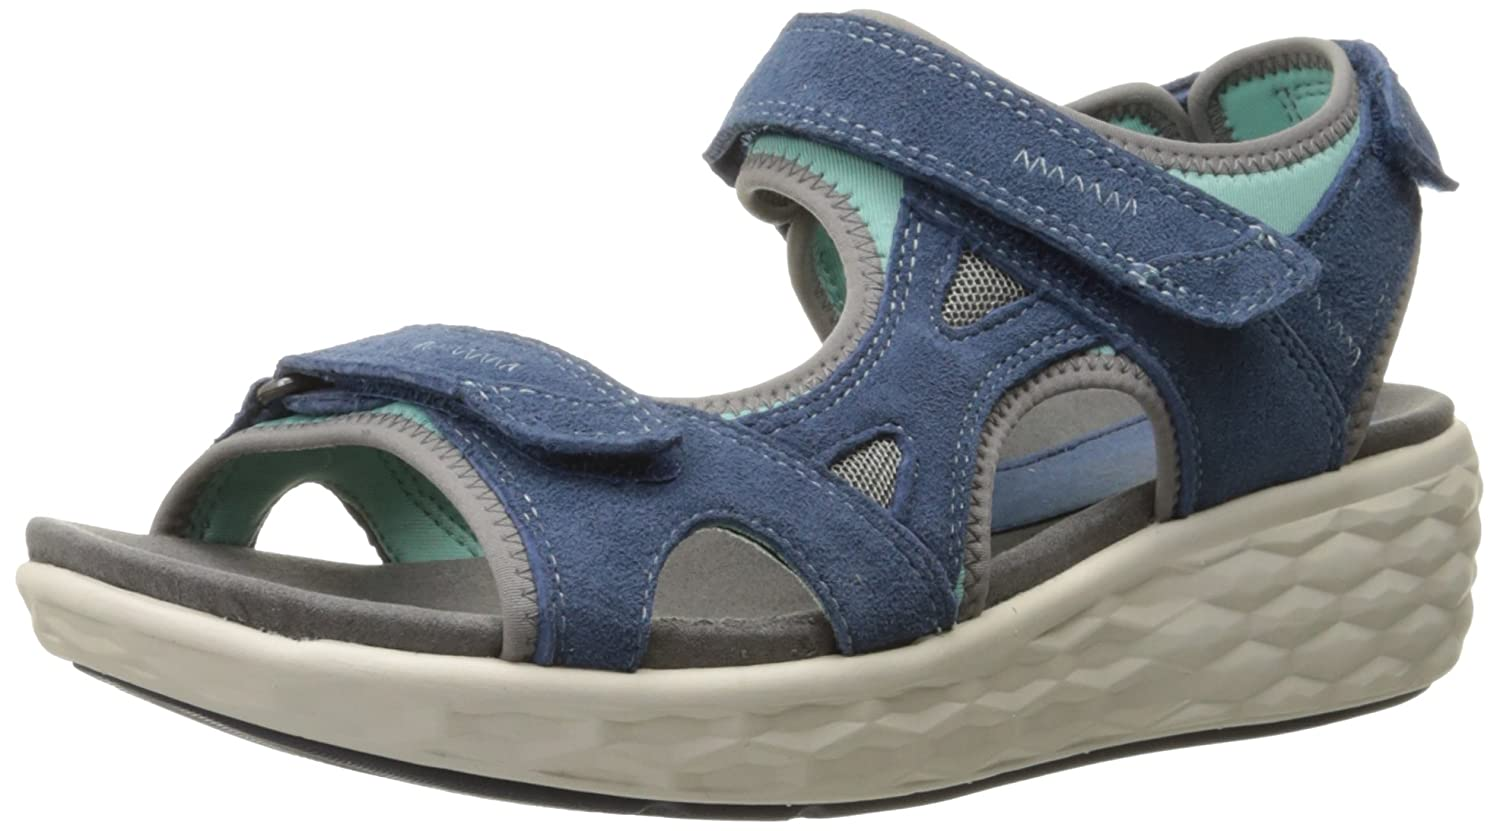 Cobb Hill Rockport Women's FreshSpark Flat B011VWLKFY 11 B(M) US|Blue